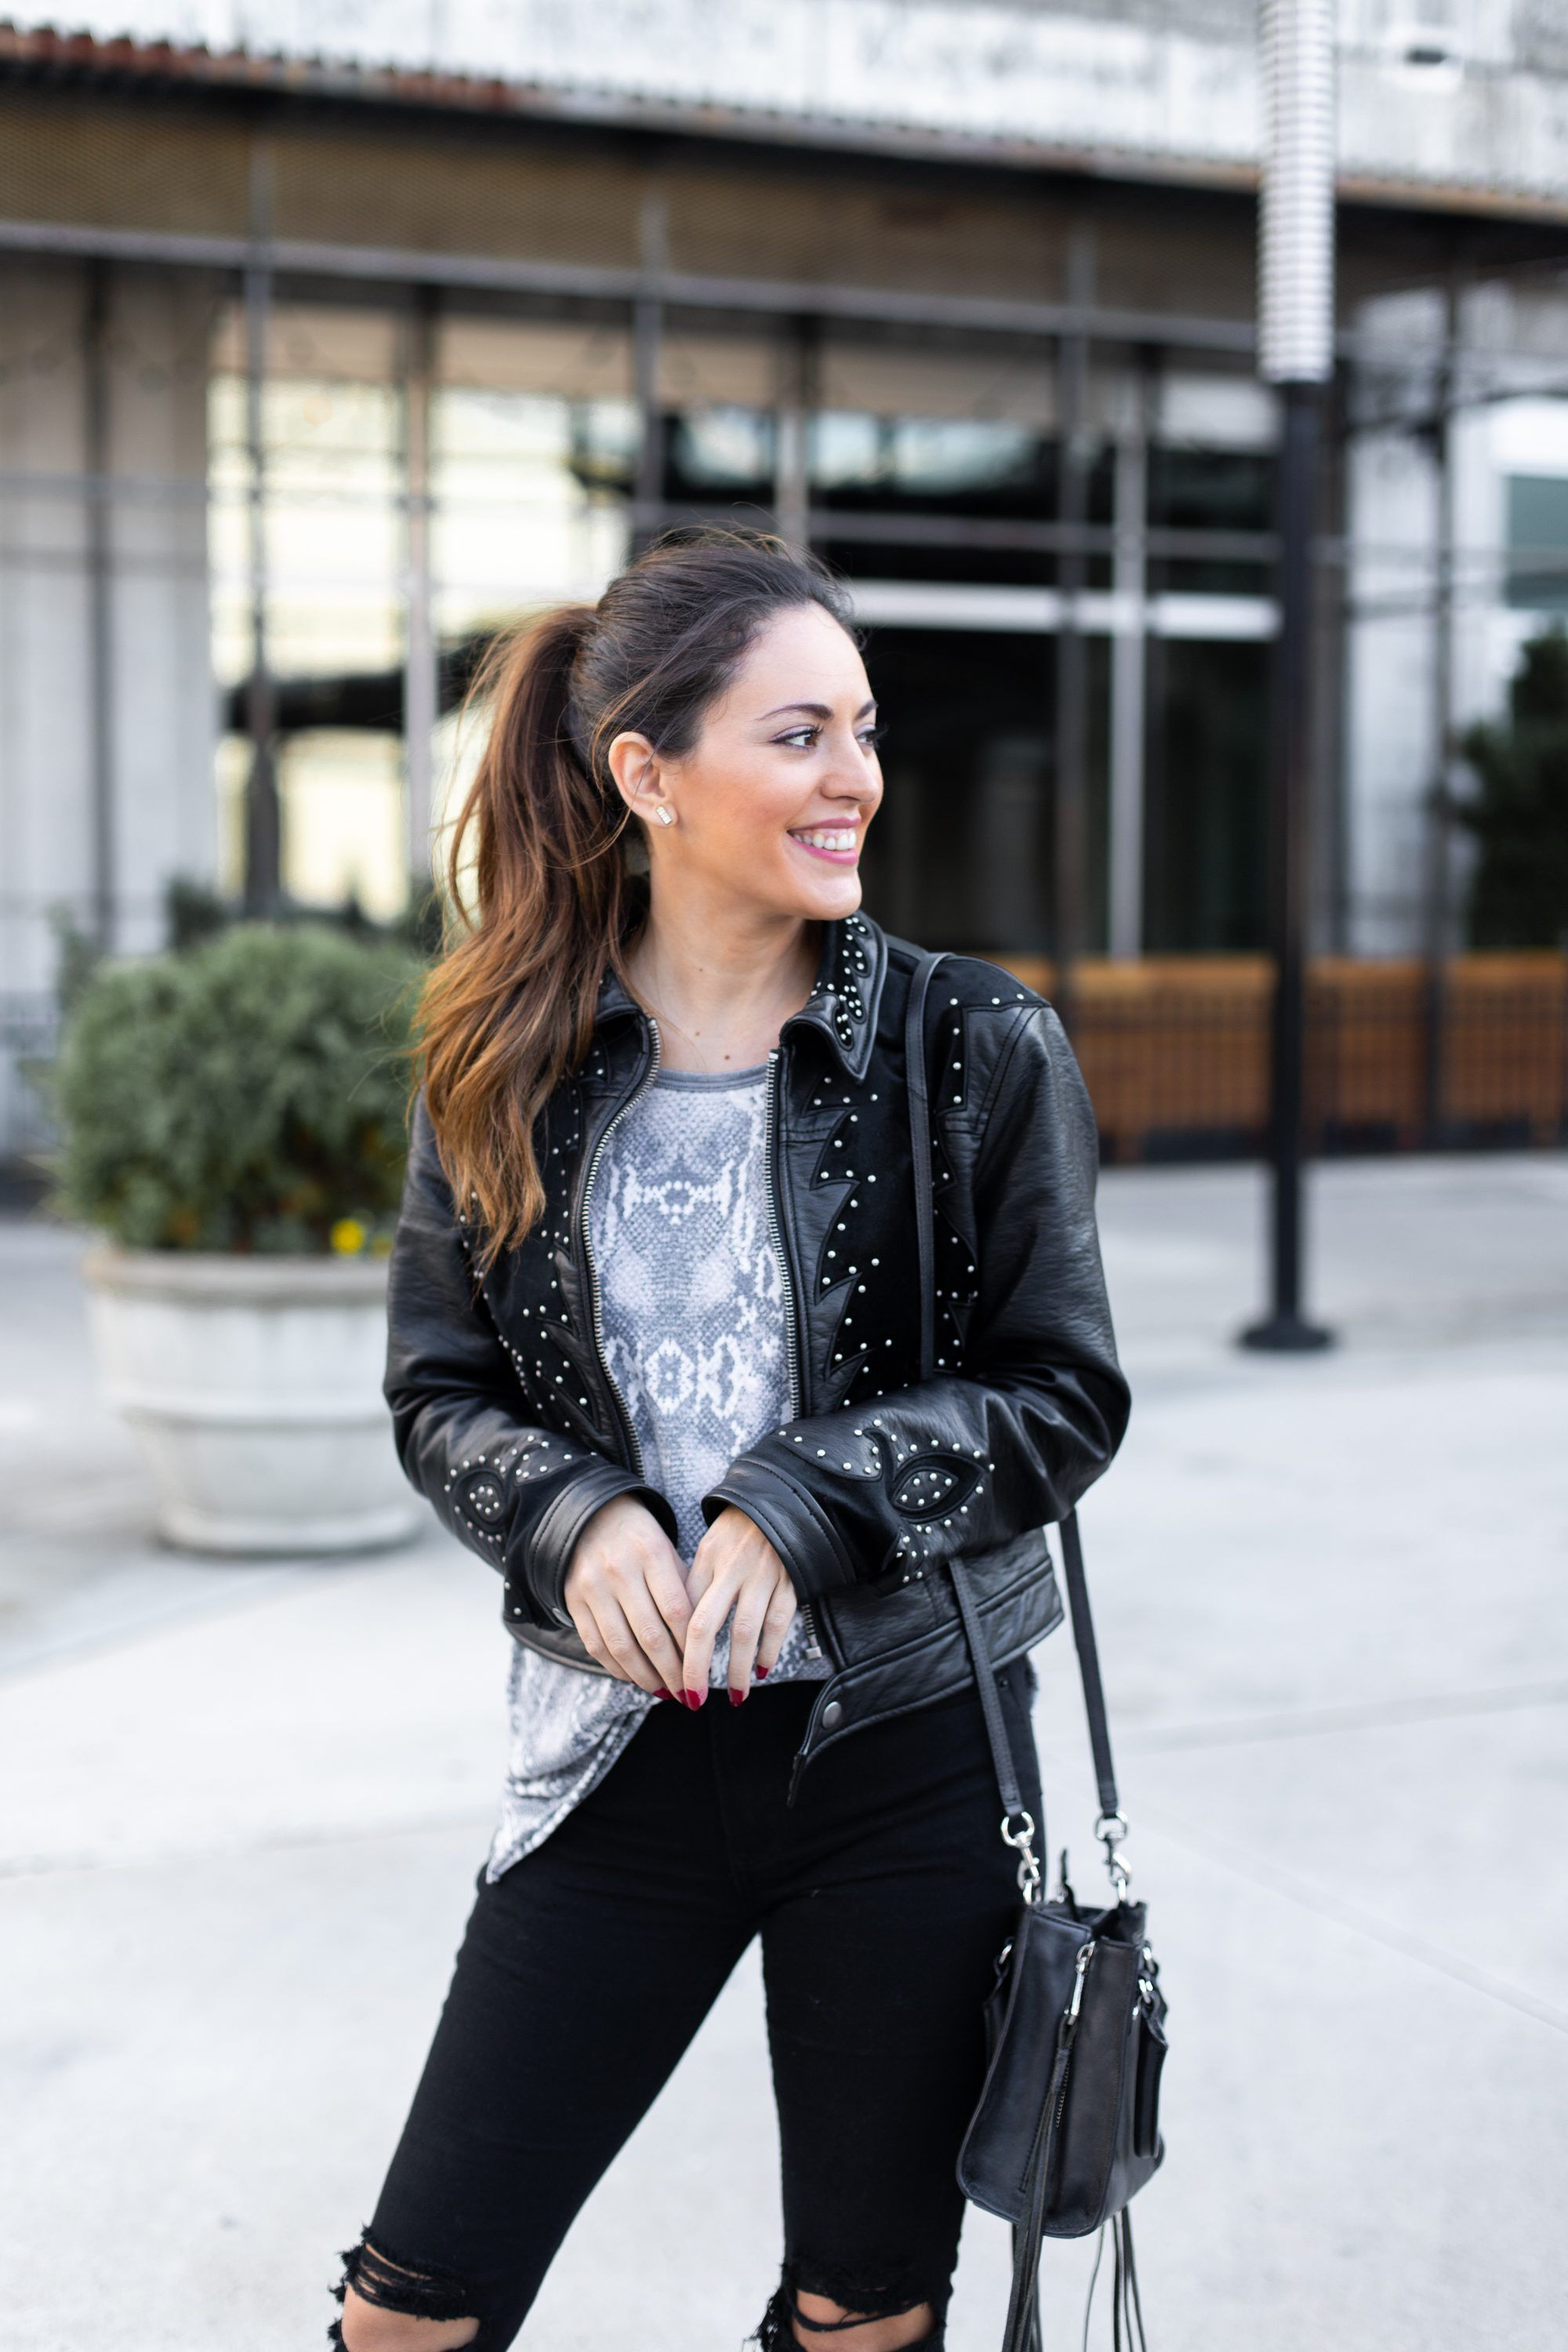 Casual Snakeskin Lush To Blush Edgy Fall Outfits Casual Fall Outfits Studded Leather Jacket [ 3000 x 2000 Pixel ]